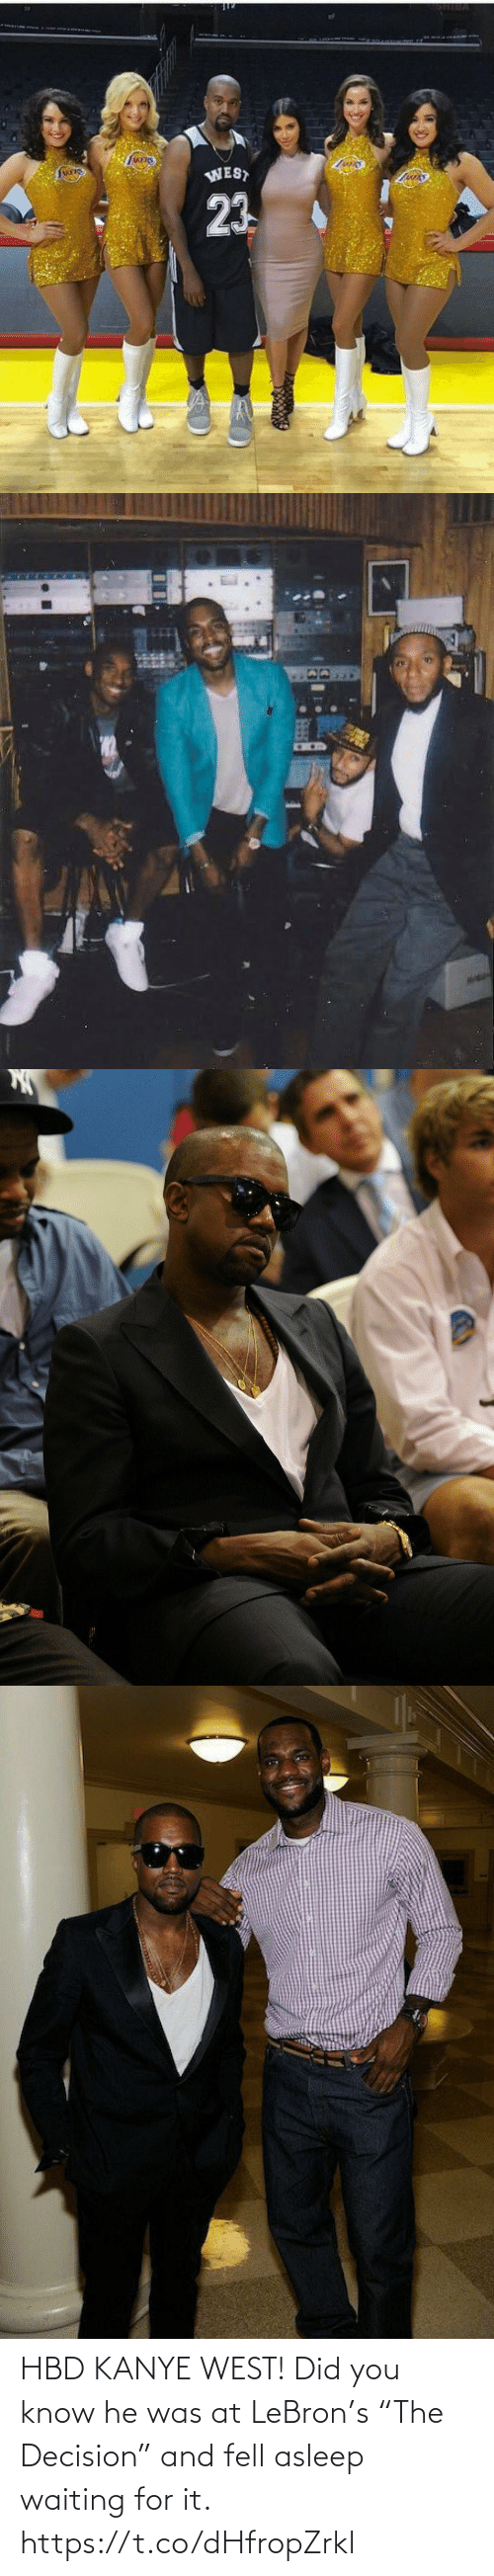 """Kanye, Memes, and Kanye West: HBD KANYE WEST! Did you know he was at LeBron's """"The Decision"""" and fell asleep waiting for it. https://t.co/dHfropZrkl"""